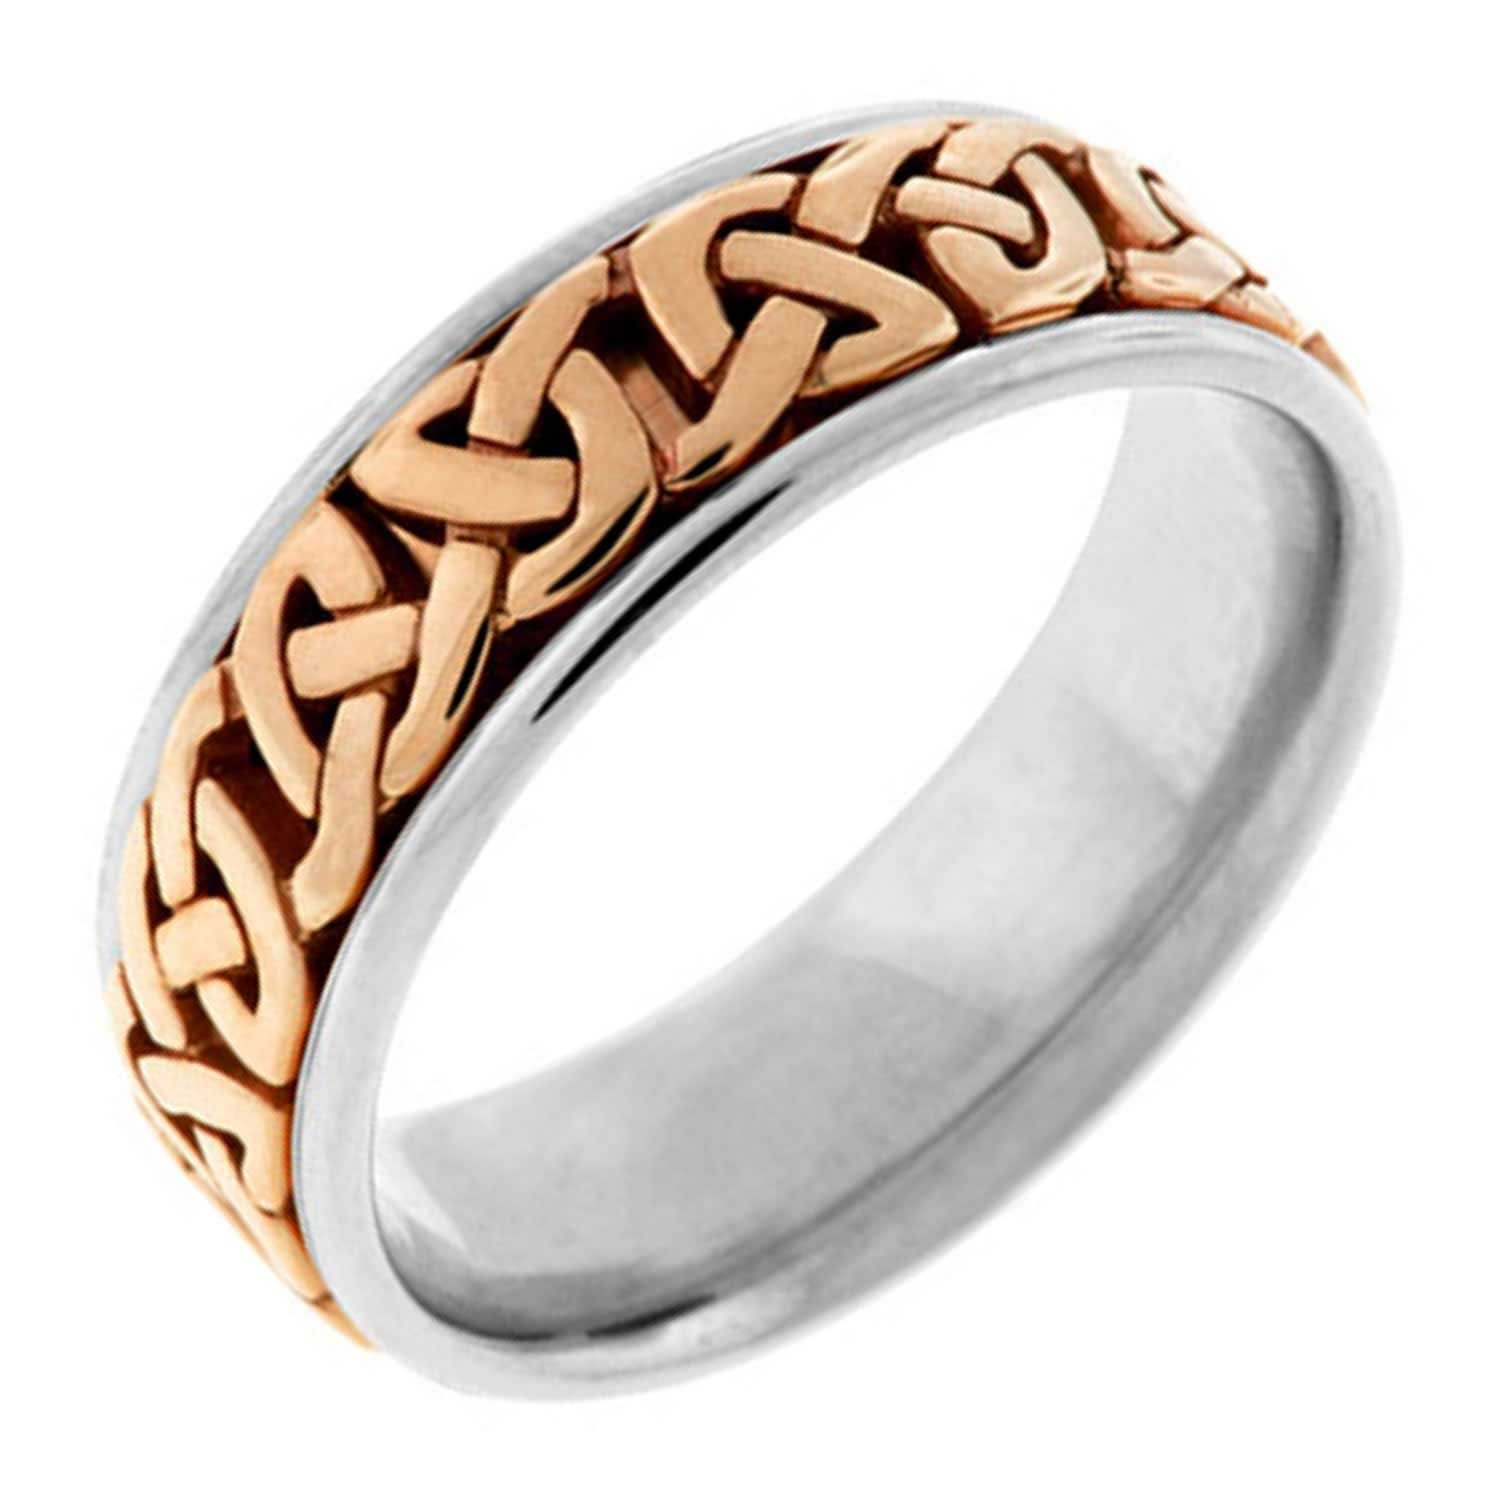 18K Two Tone Gold Celtic Love Knot Men's Comfort Fit Wedding Band (7mm) Size-9.5c1